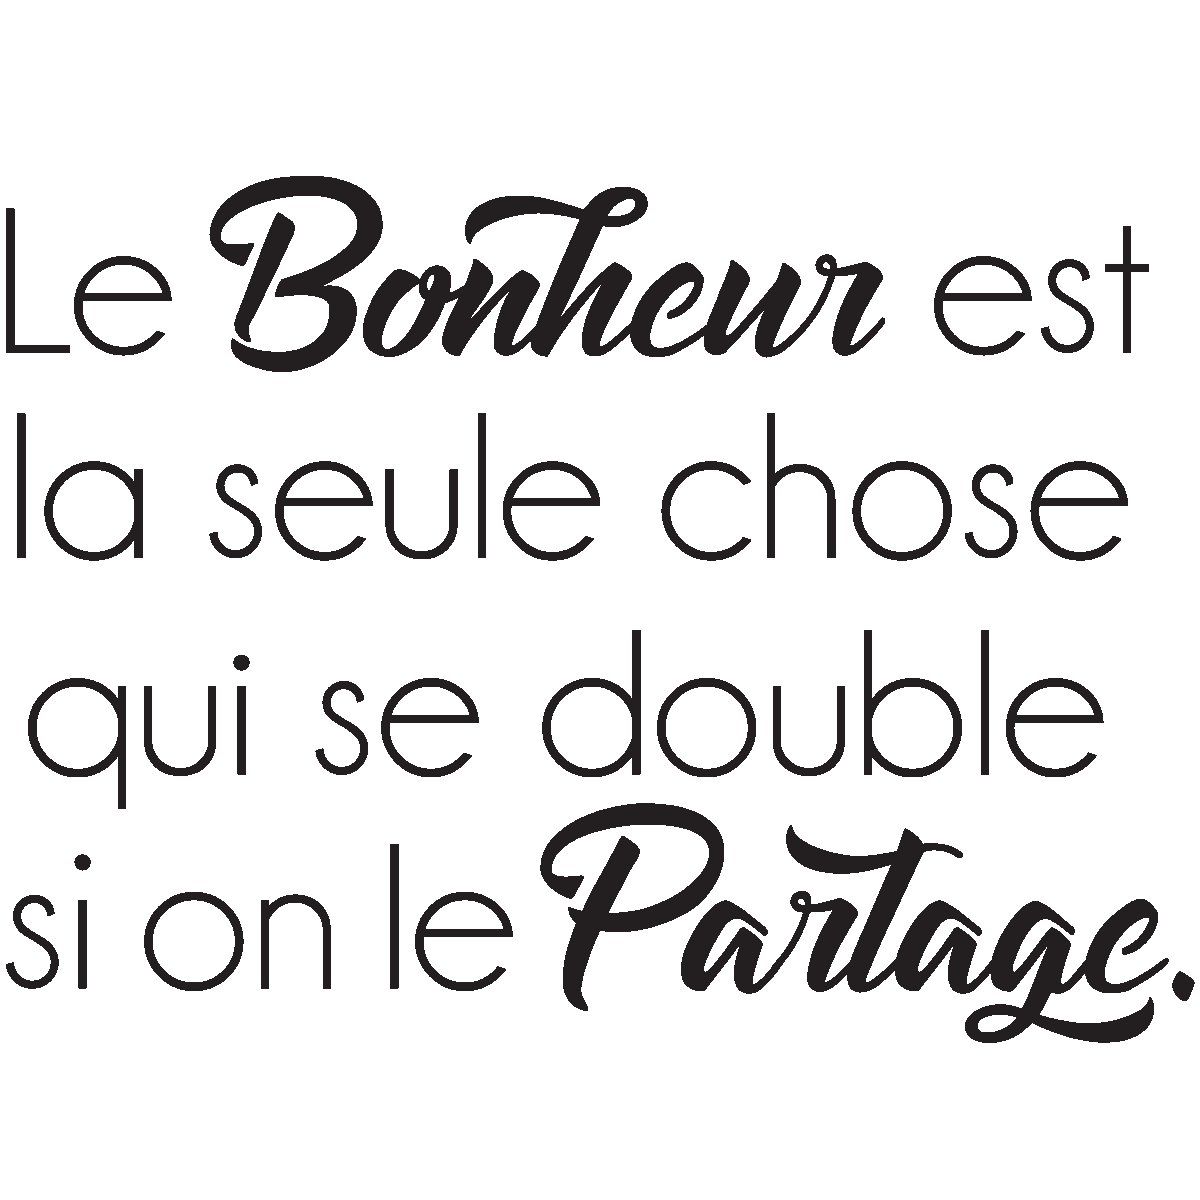 sticker citation le bonheur est la seule chose stickers citations fran ais ambiance sticker. Black Bedroom Furniture Sets. Home Design Ideas